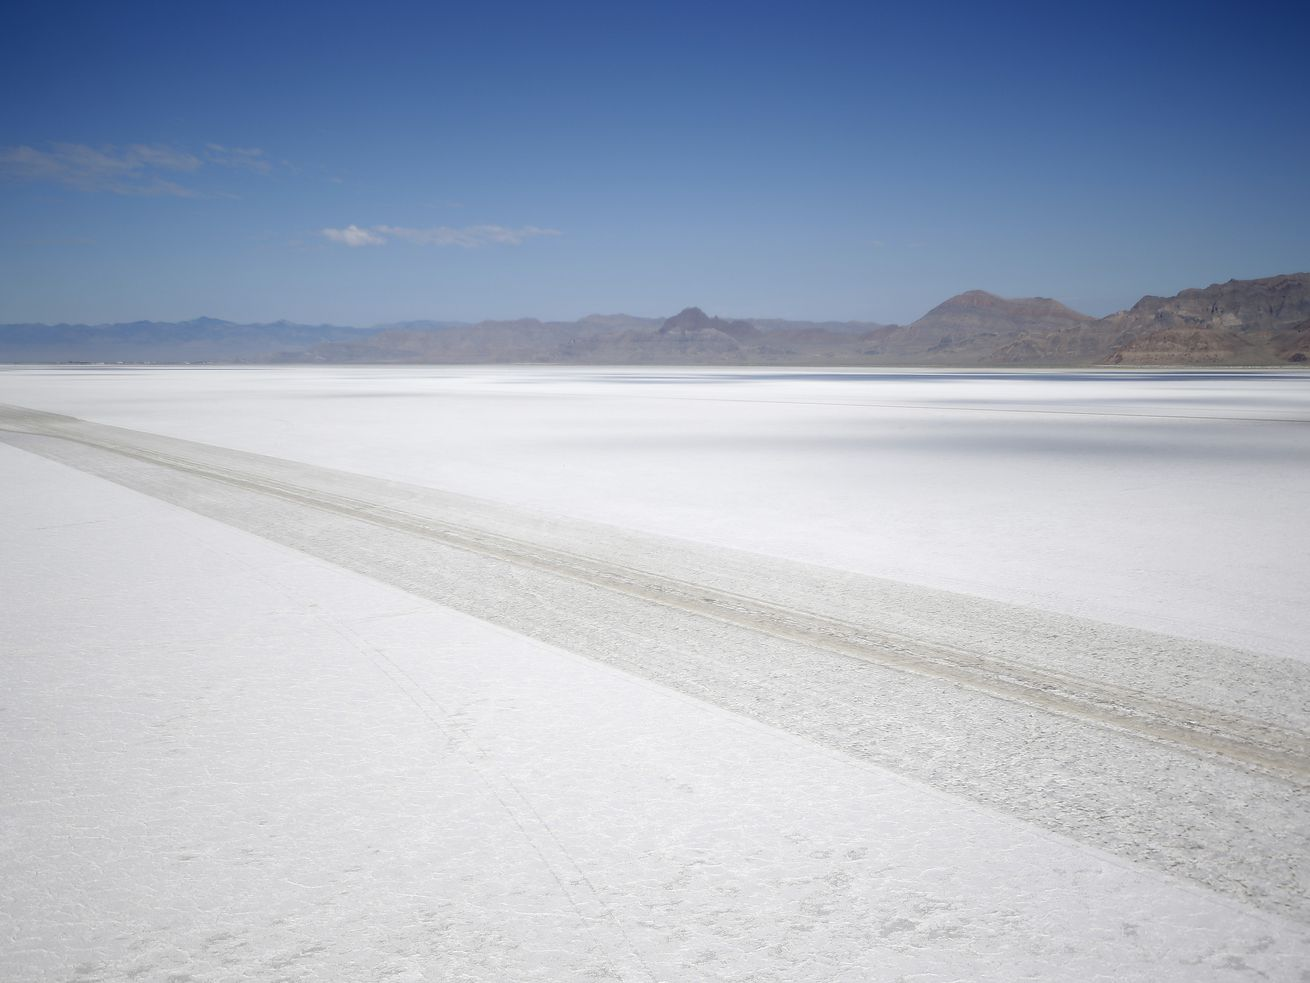 The Bonneville Salt Flats in Utah are pictured on Wednesday, July 22, 2015.